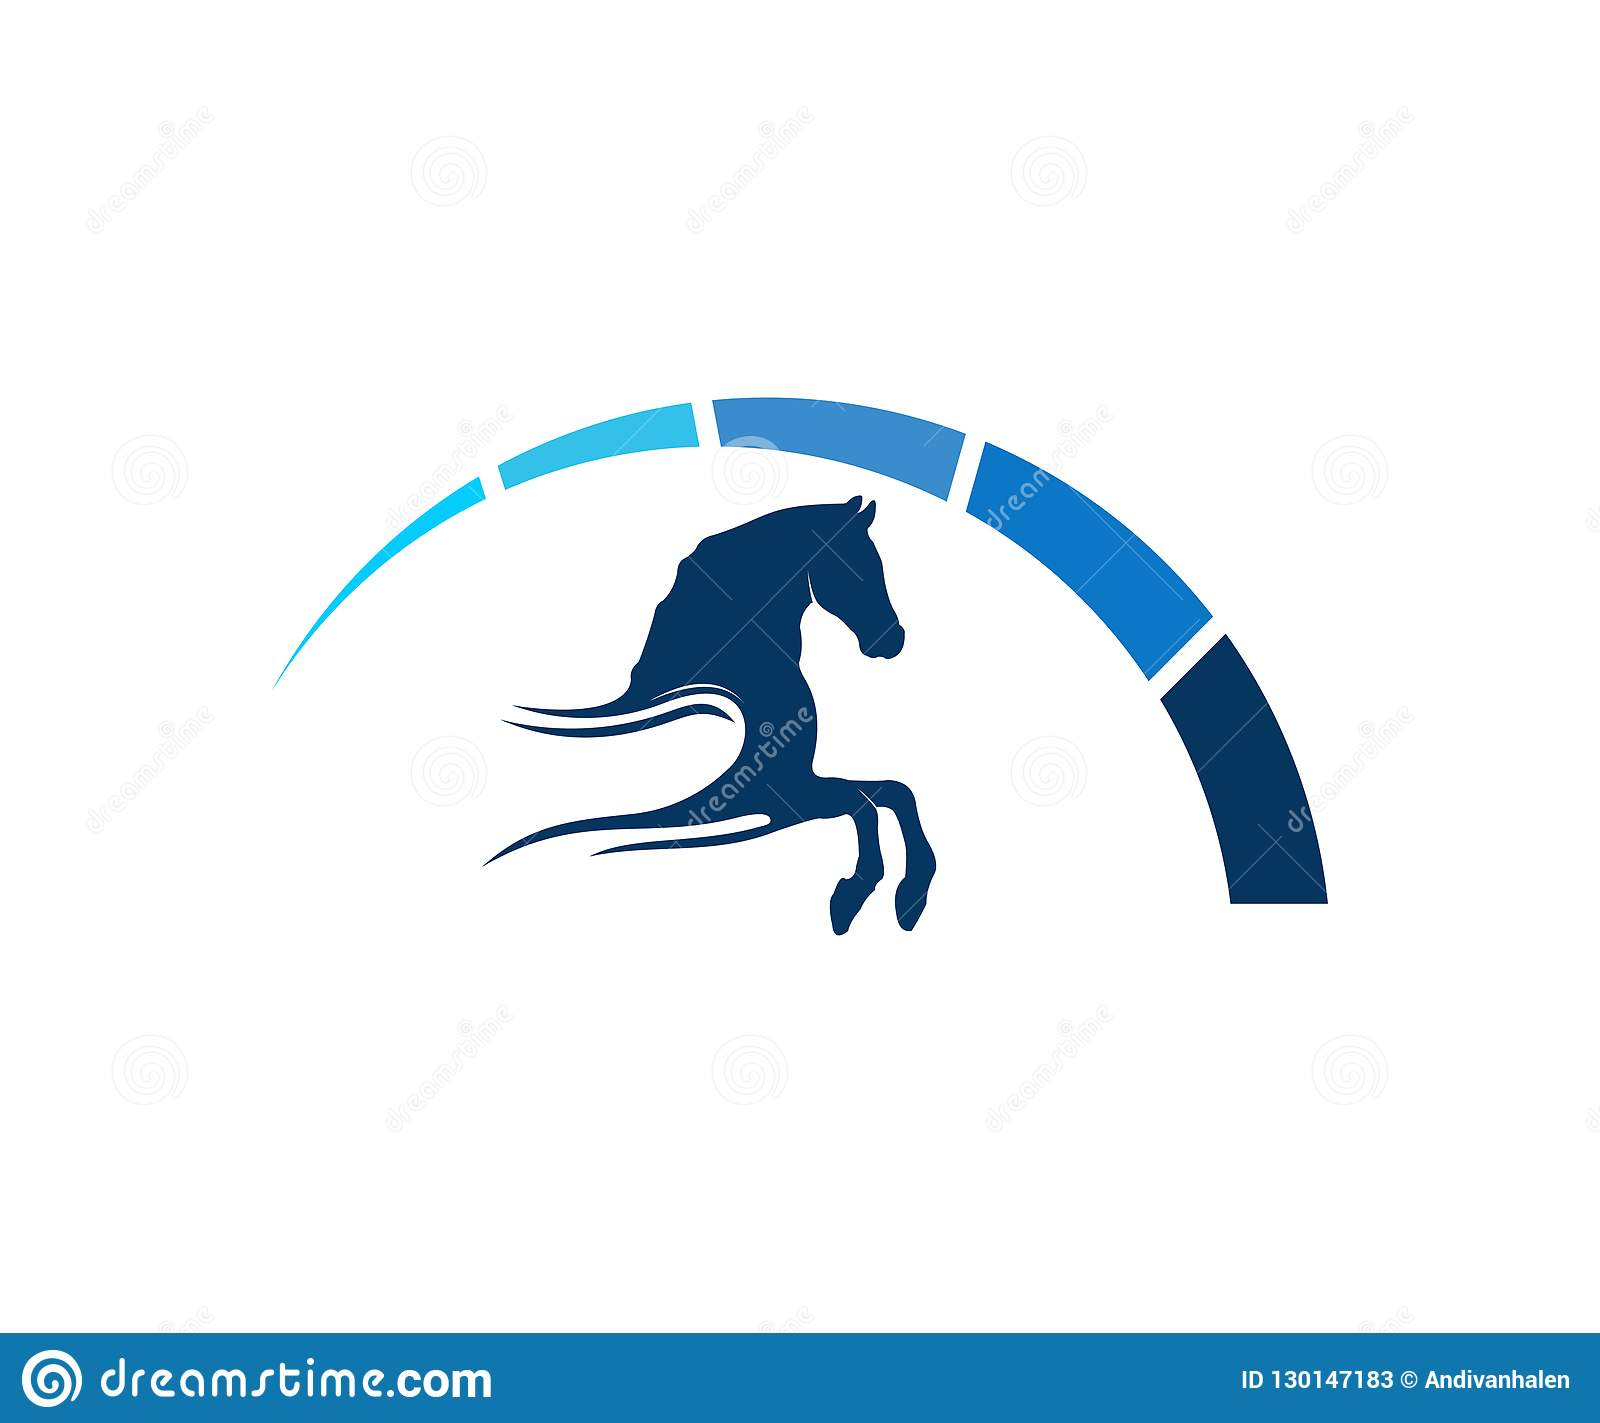 Simple Horse Sport Vector Logo Design Inspiration Stock Illustration Illustration Of Logo Speed 130147183